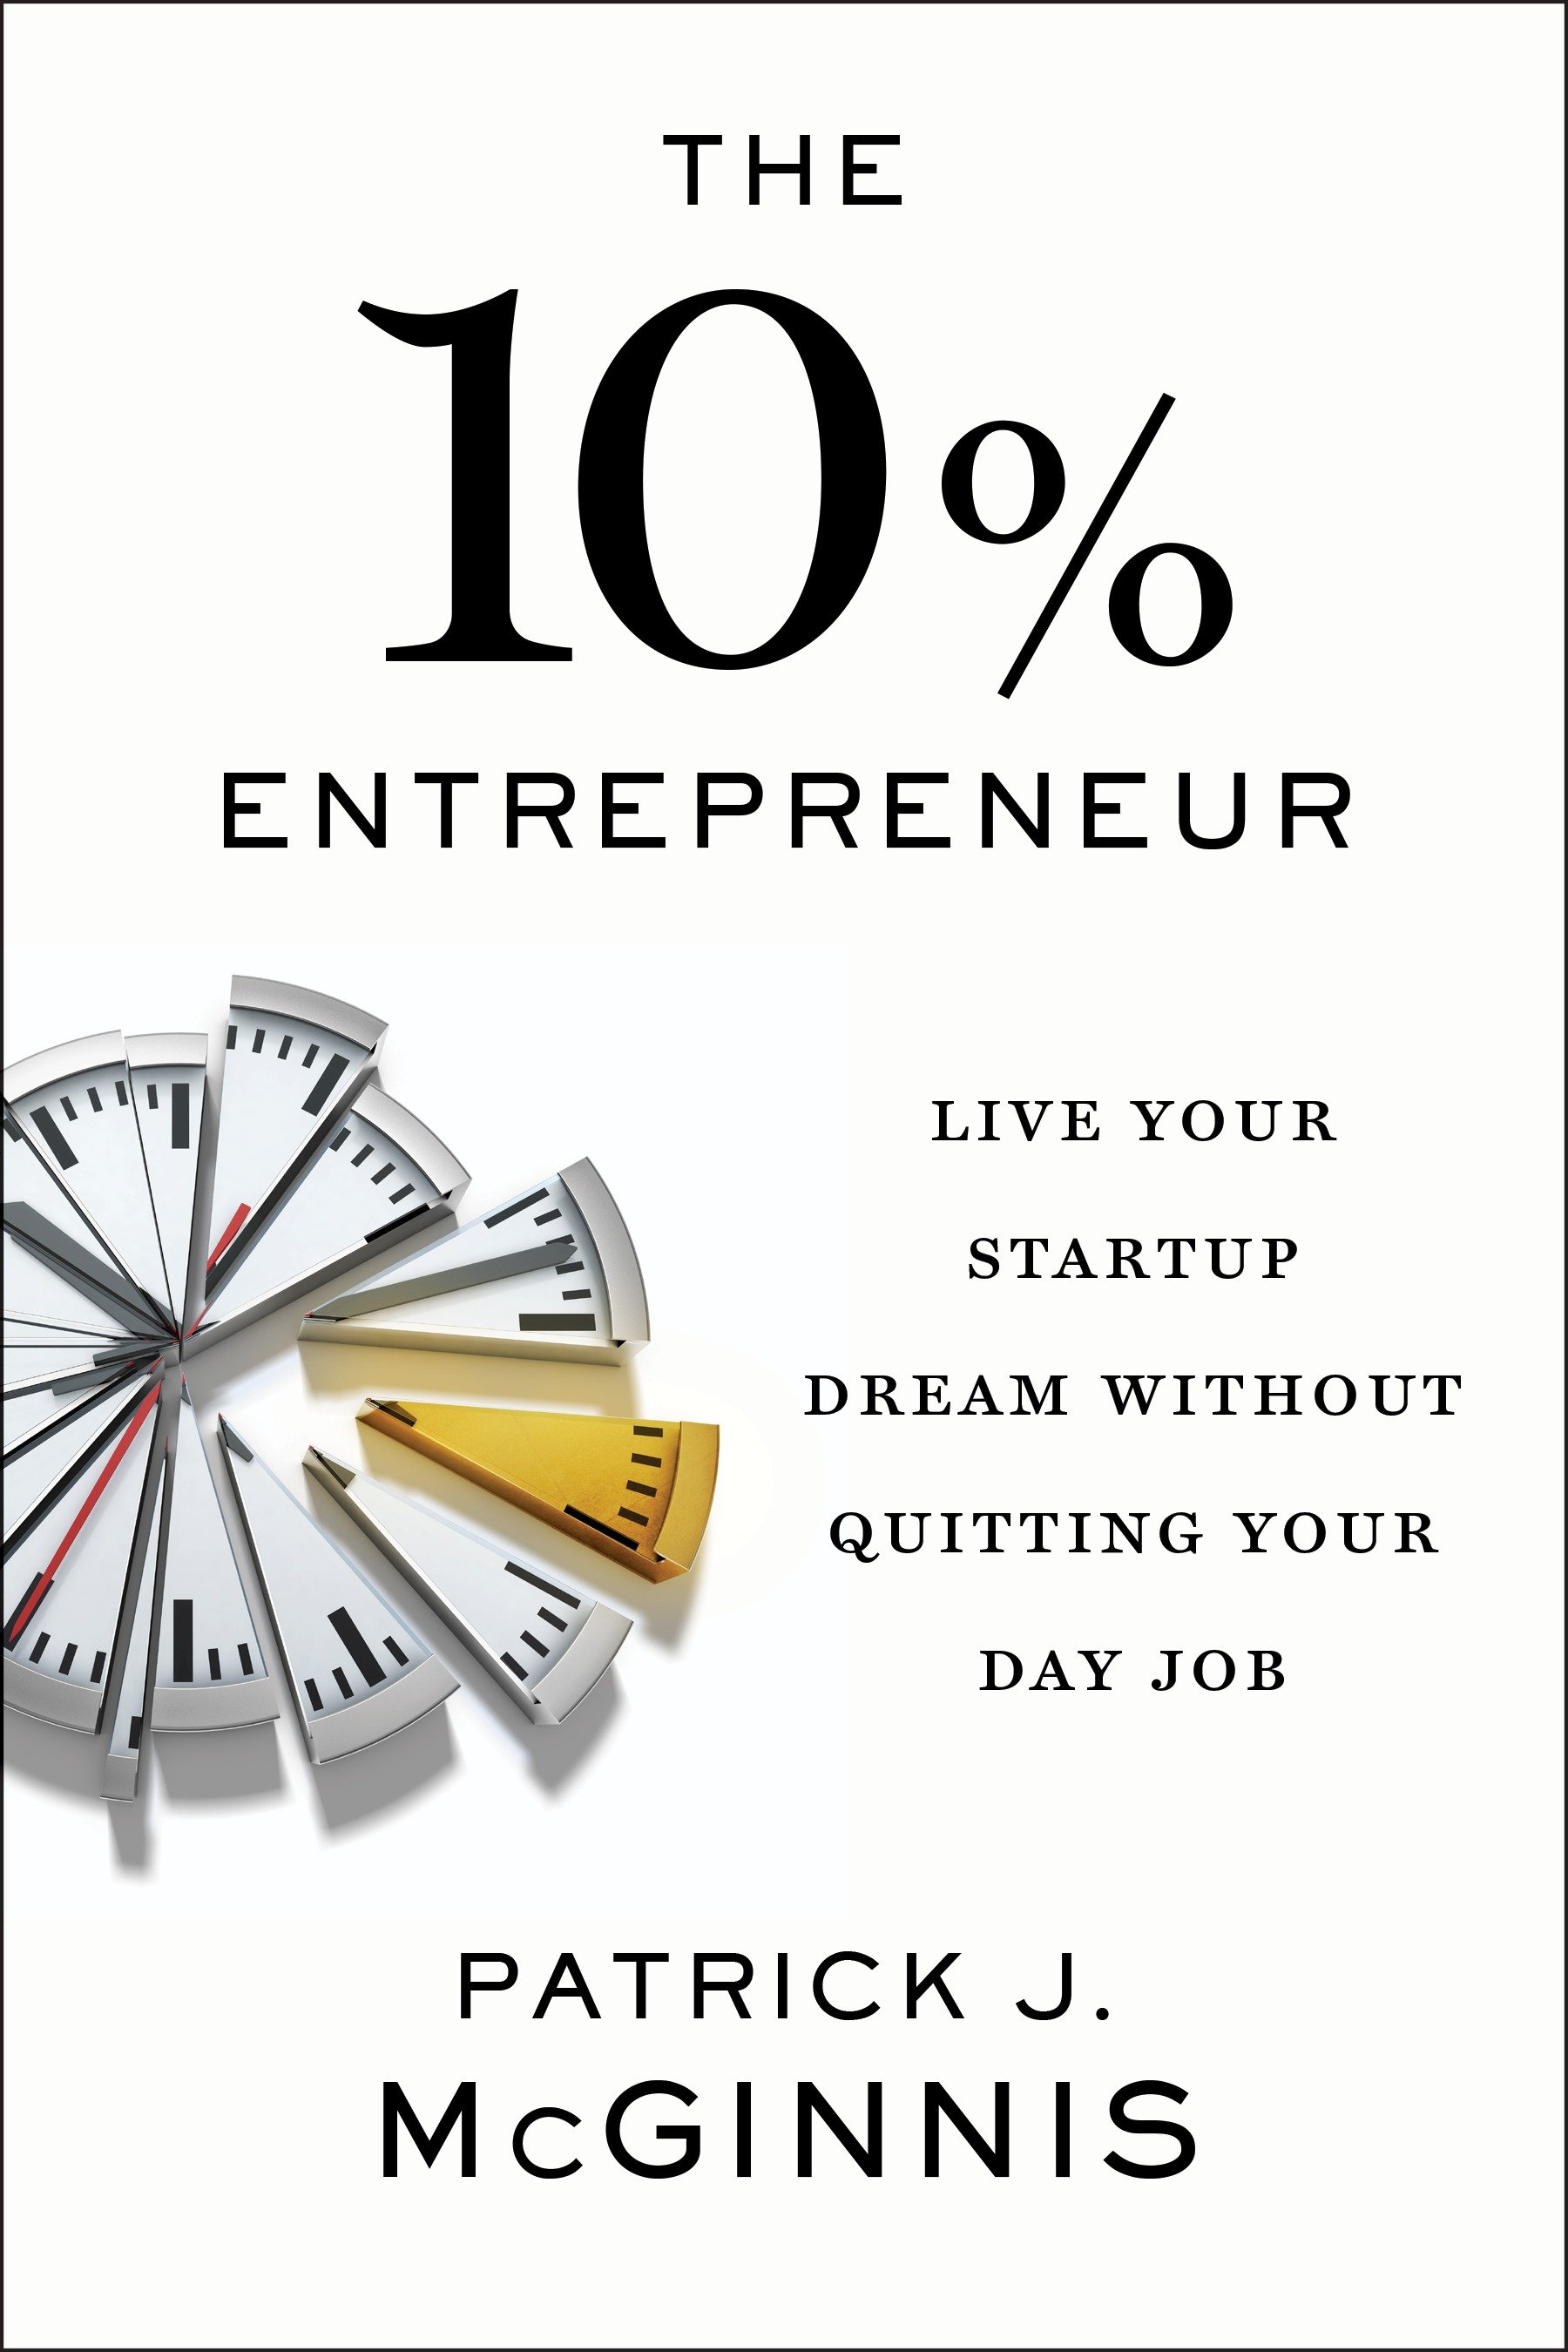 The 10% Entrepreneur Live Your Startup Dream Without Quitting Your Day Job